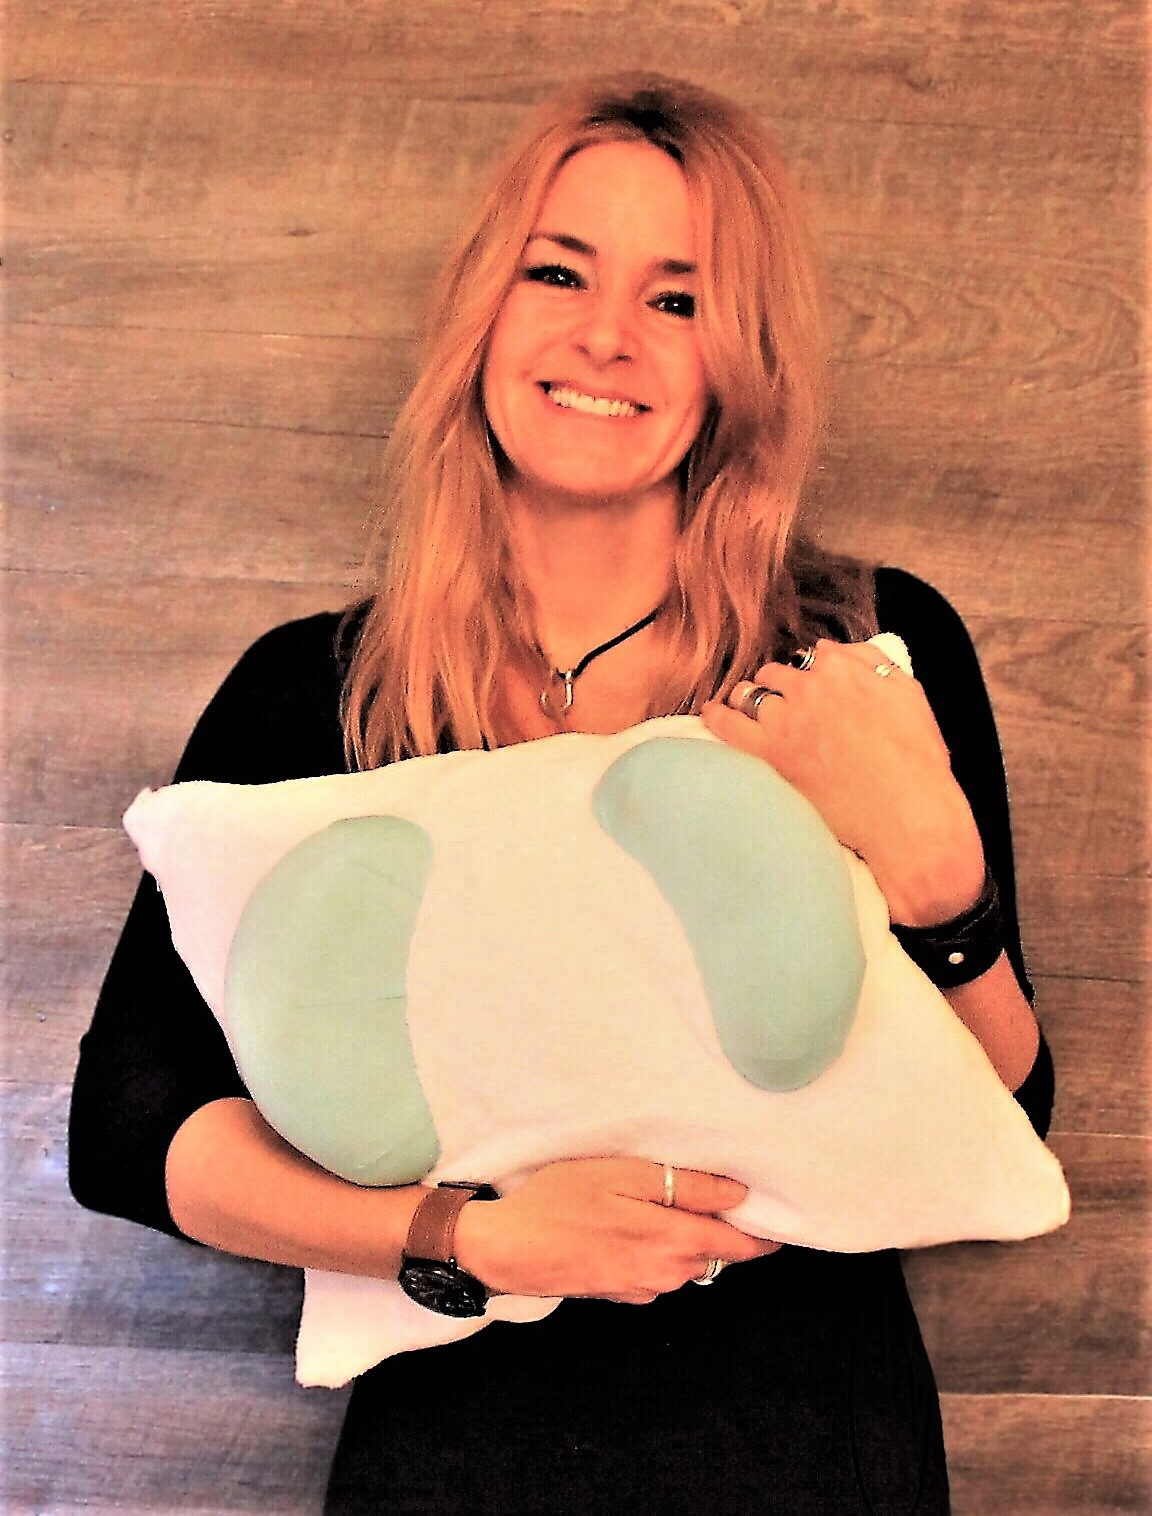 Helene Inventor of the Back to Beauty Anti-Wrinkle Beauty Pillow for Back Sleeping Wrinkle Prevention Anti Aging Back Sleeping